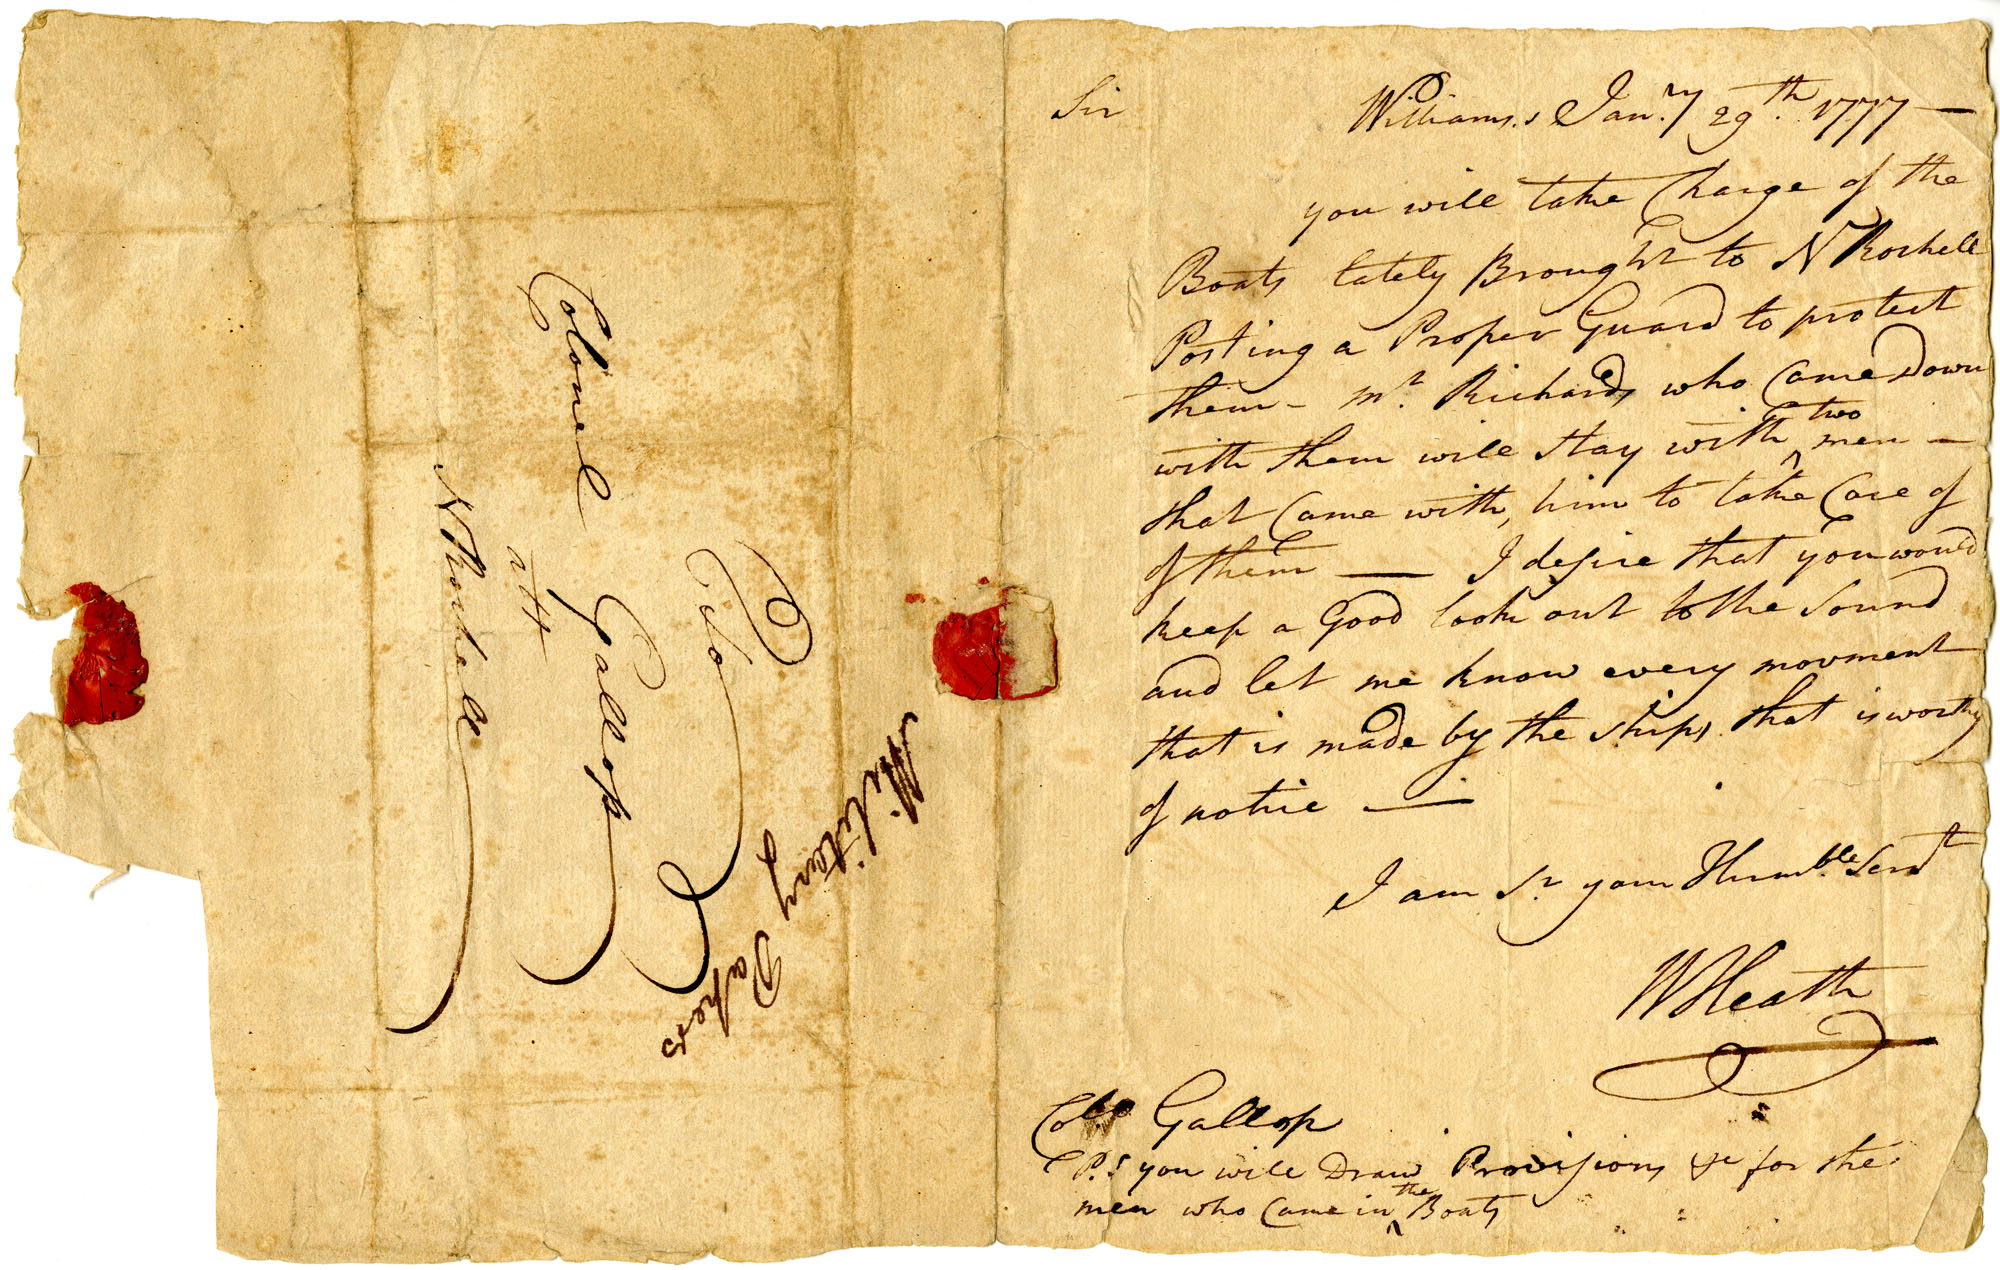 Letter from William Heath to Colonel Gallop [Gallup?]